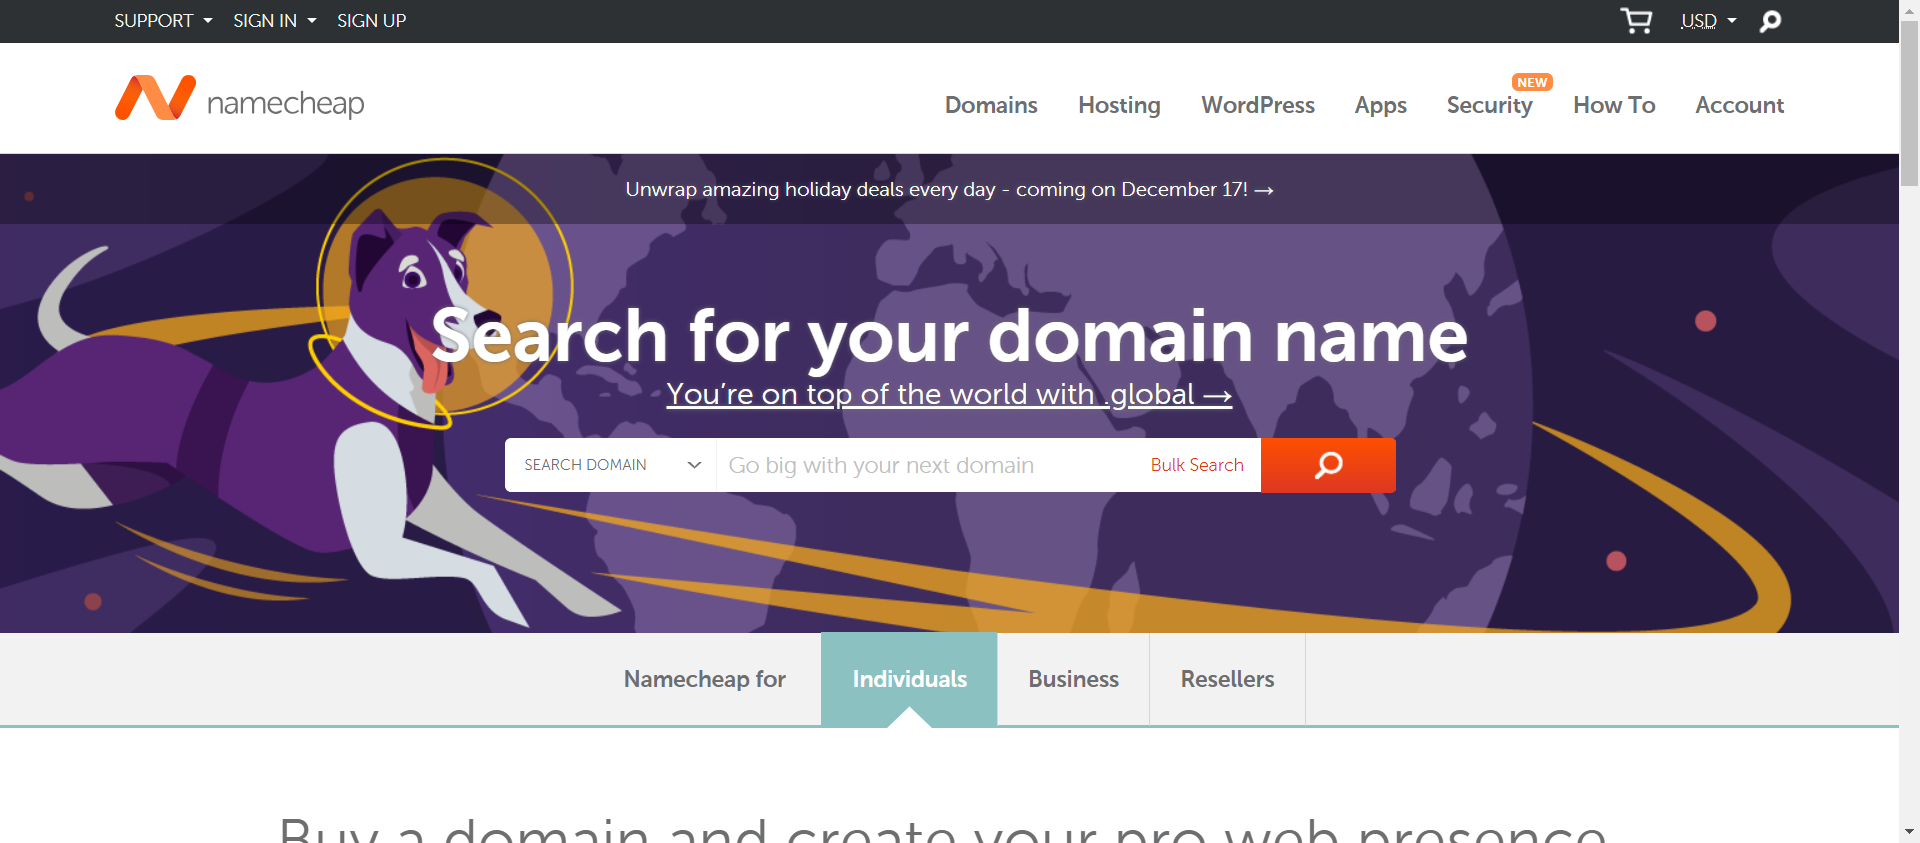 Namecheap website image